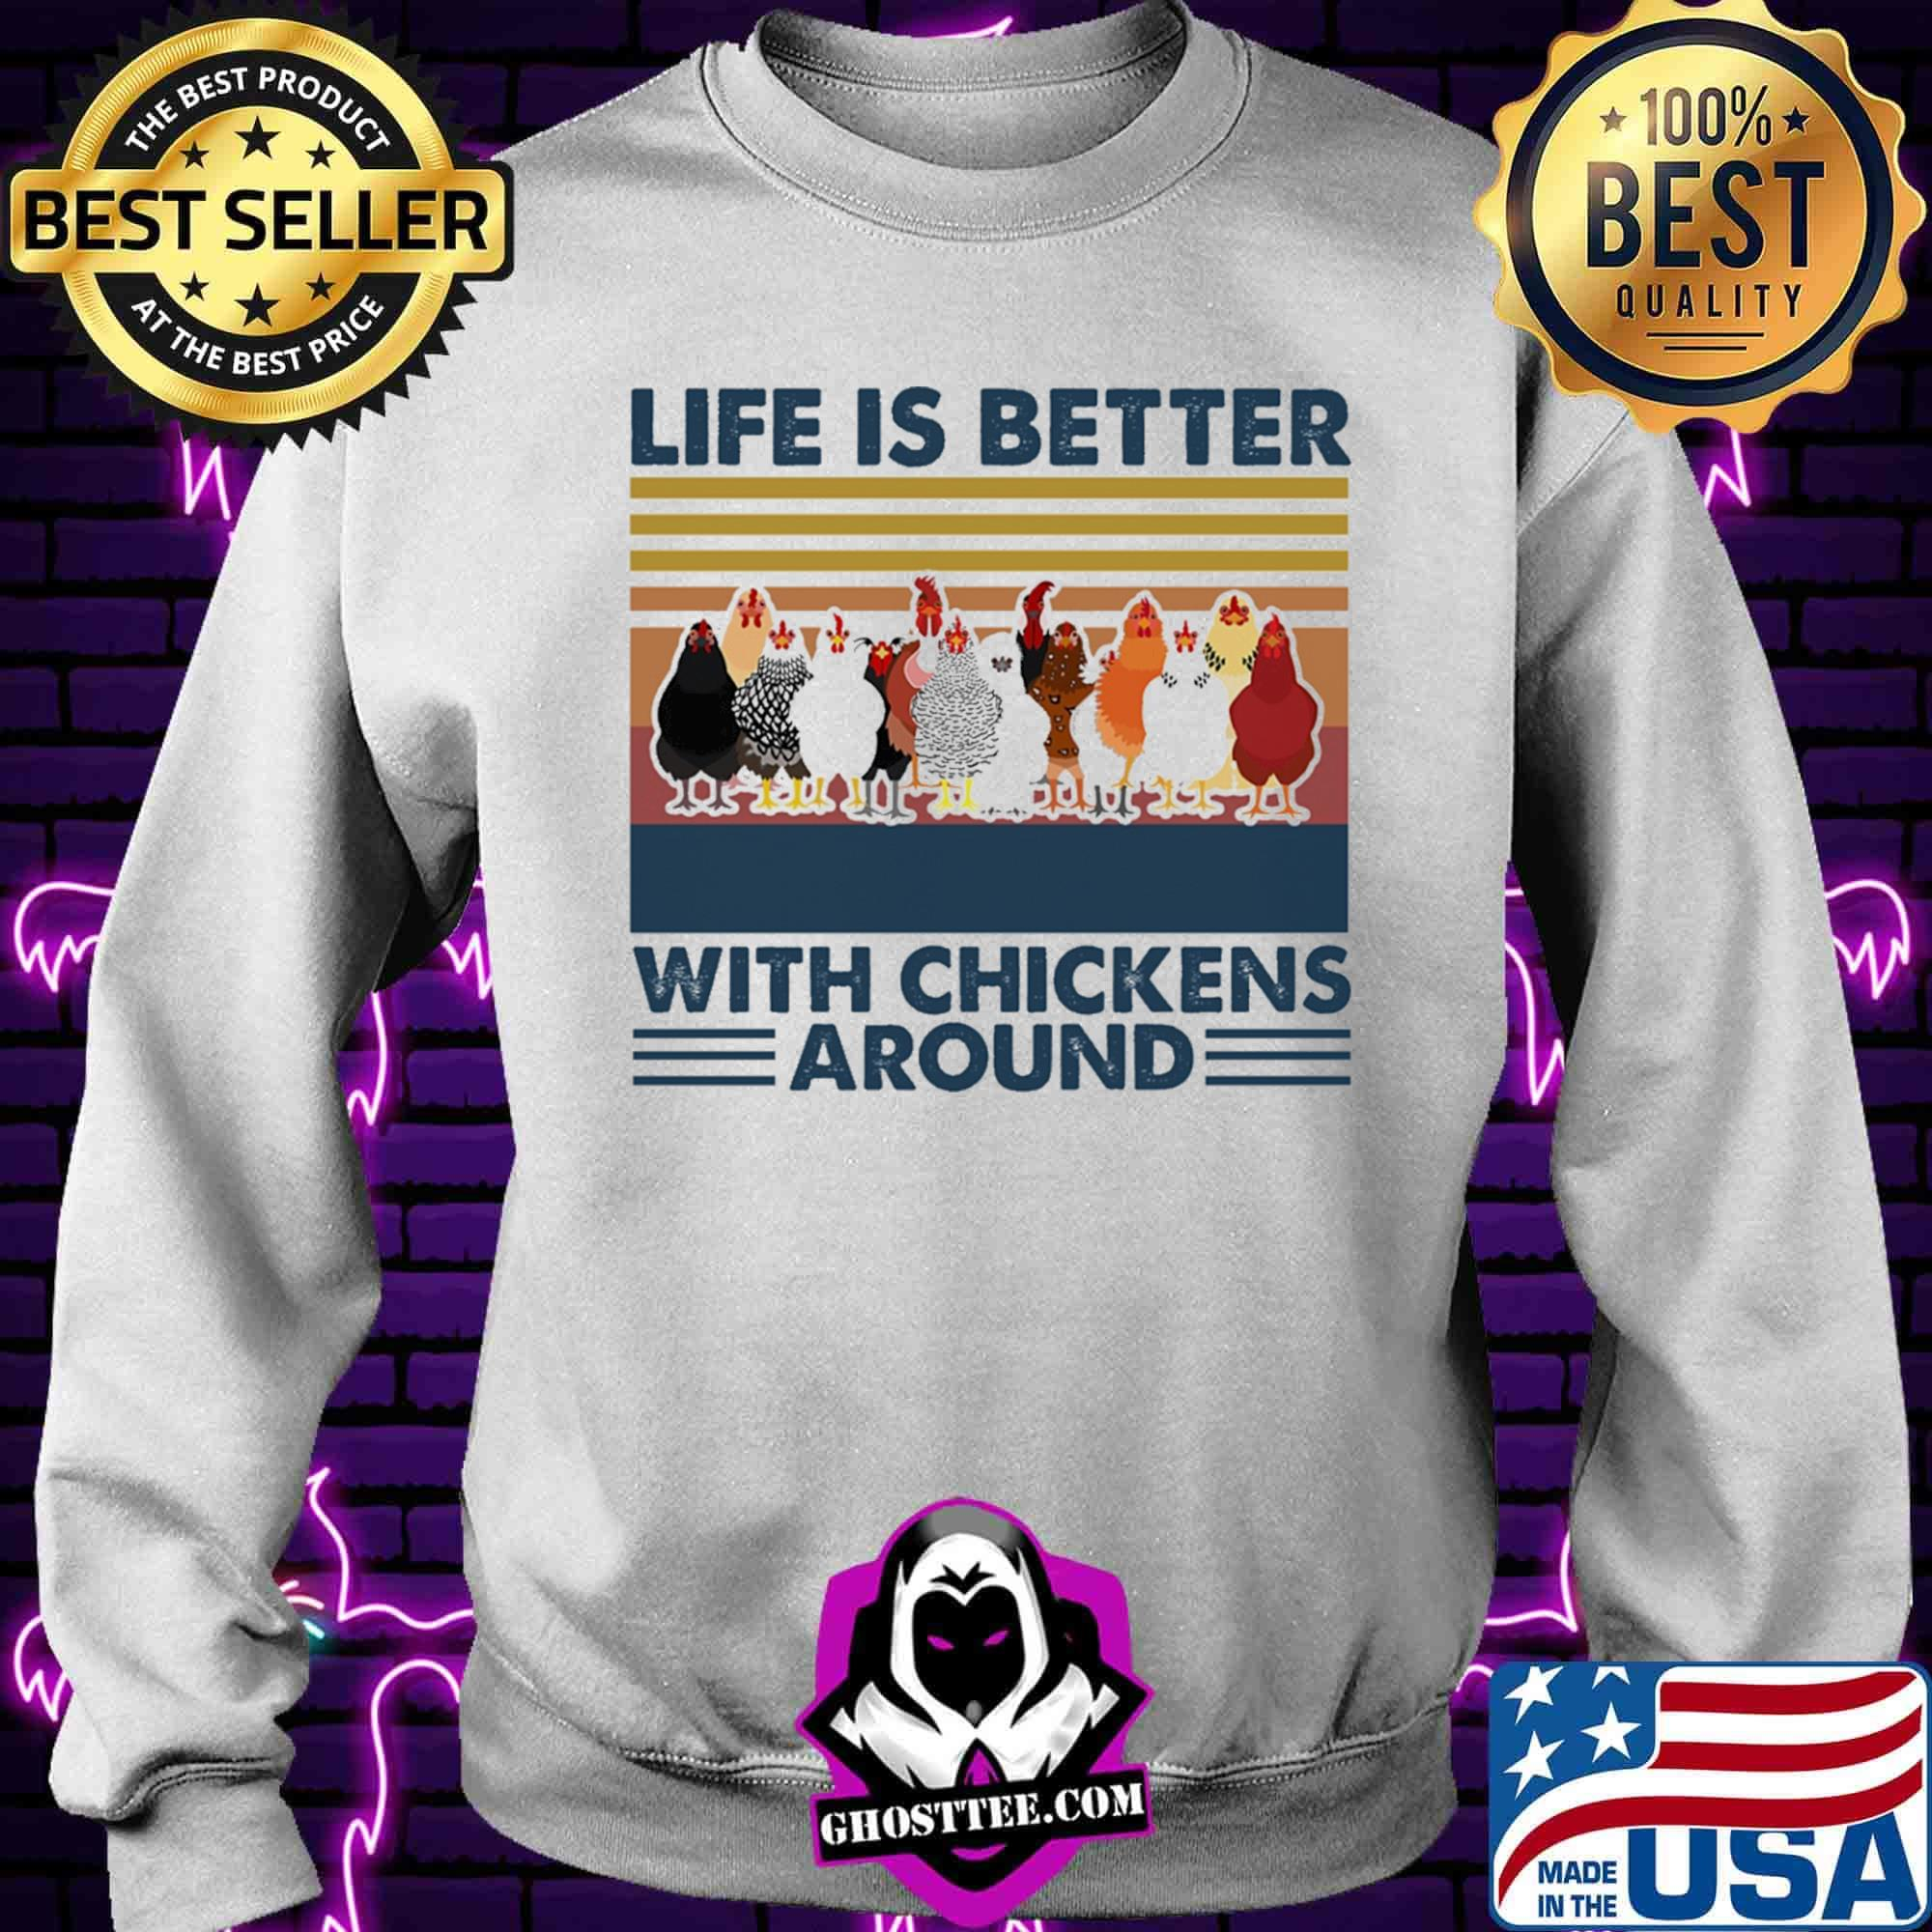 39036e70 life is better ith chichens around vintager tretrro shirt sweater - Home